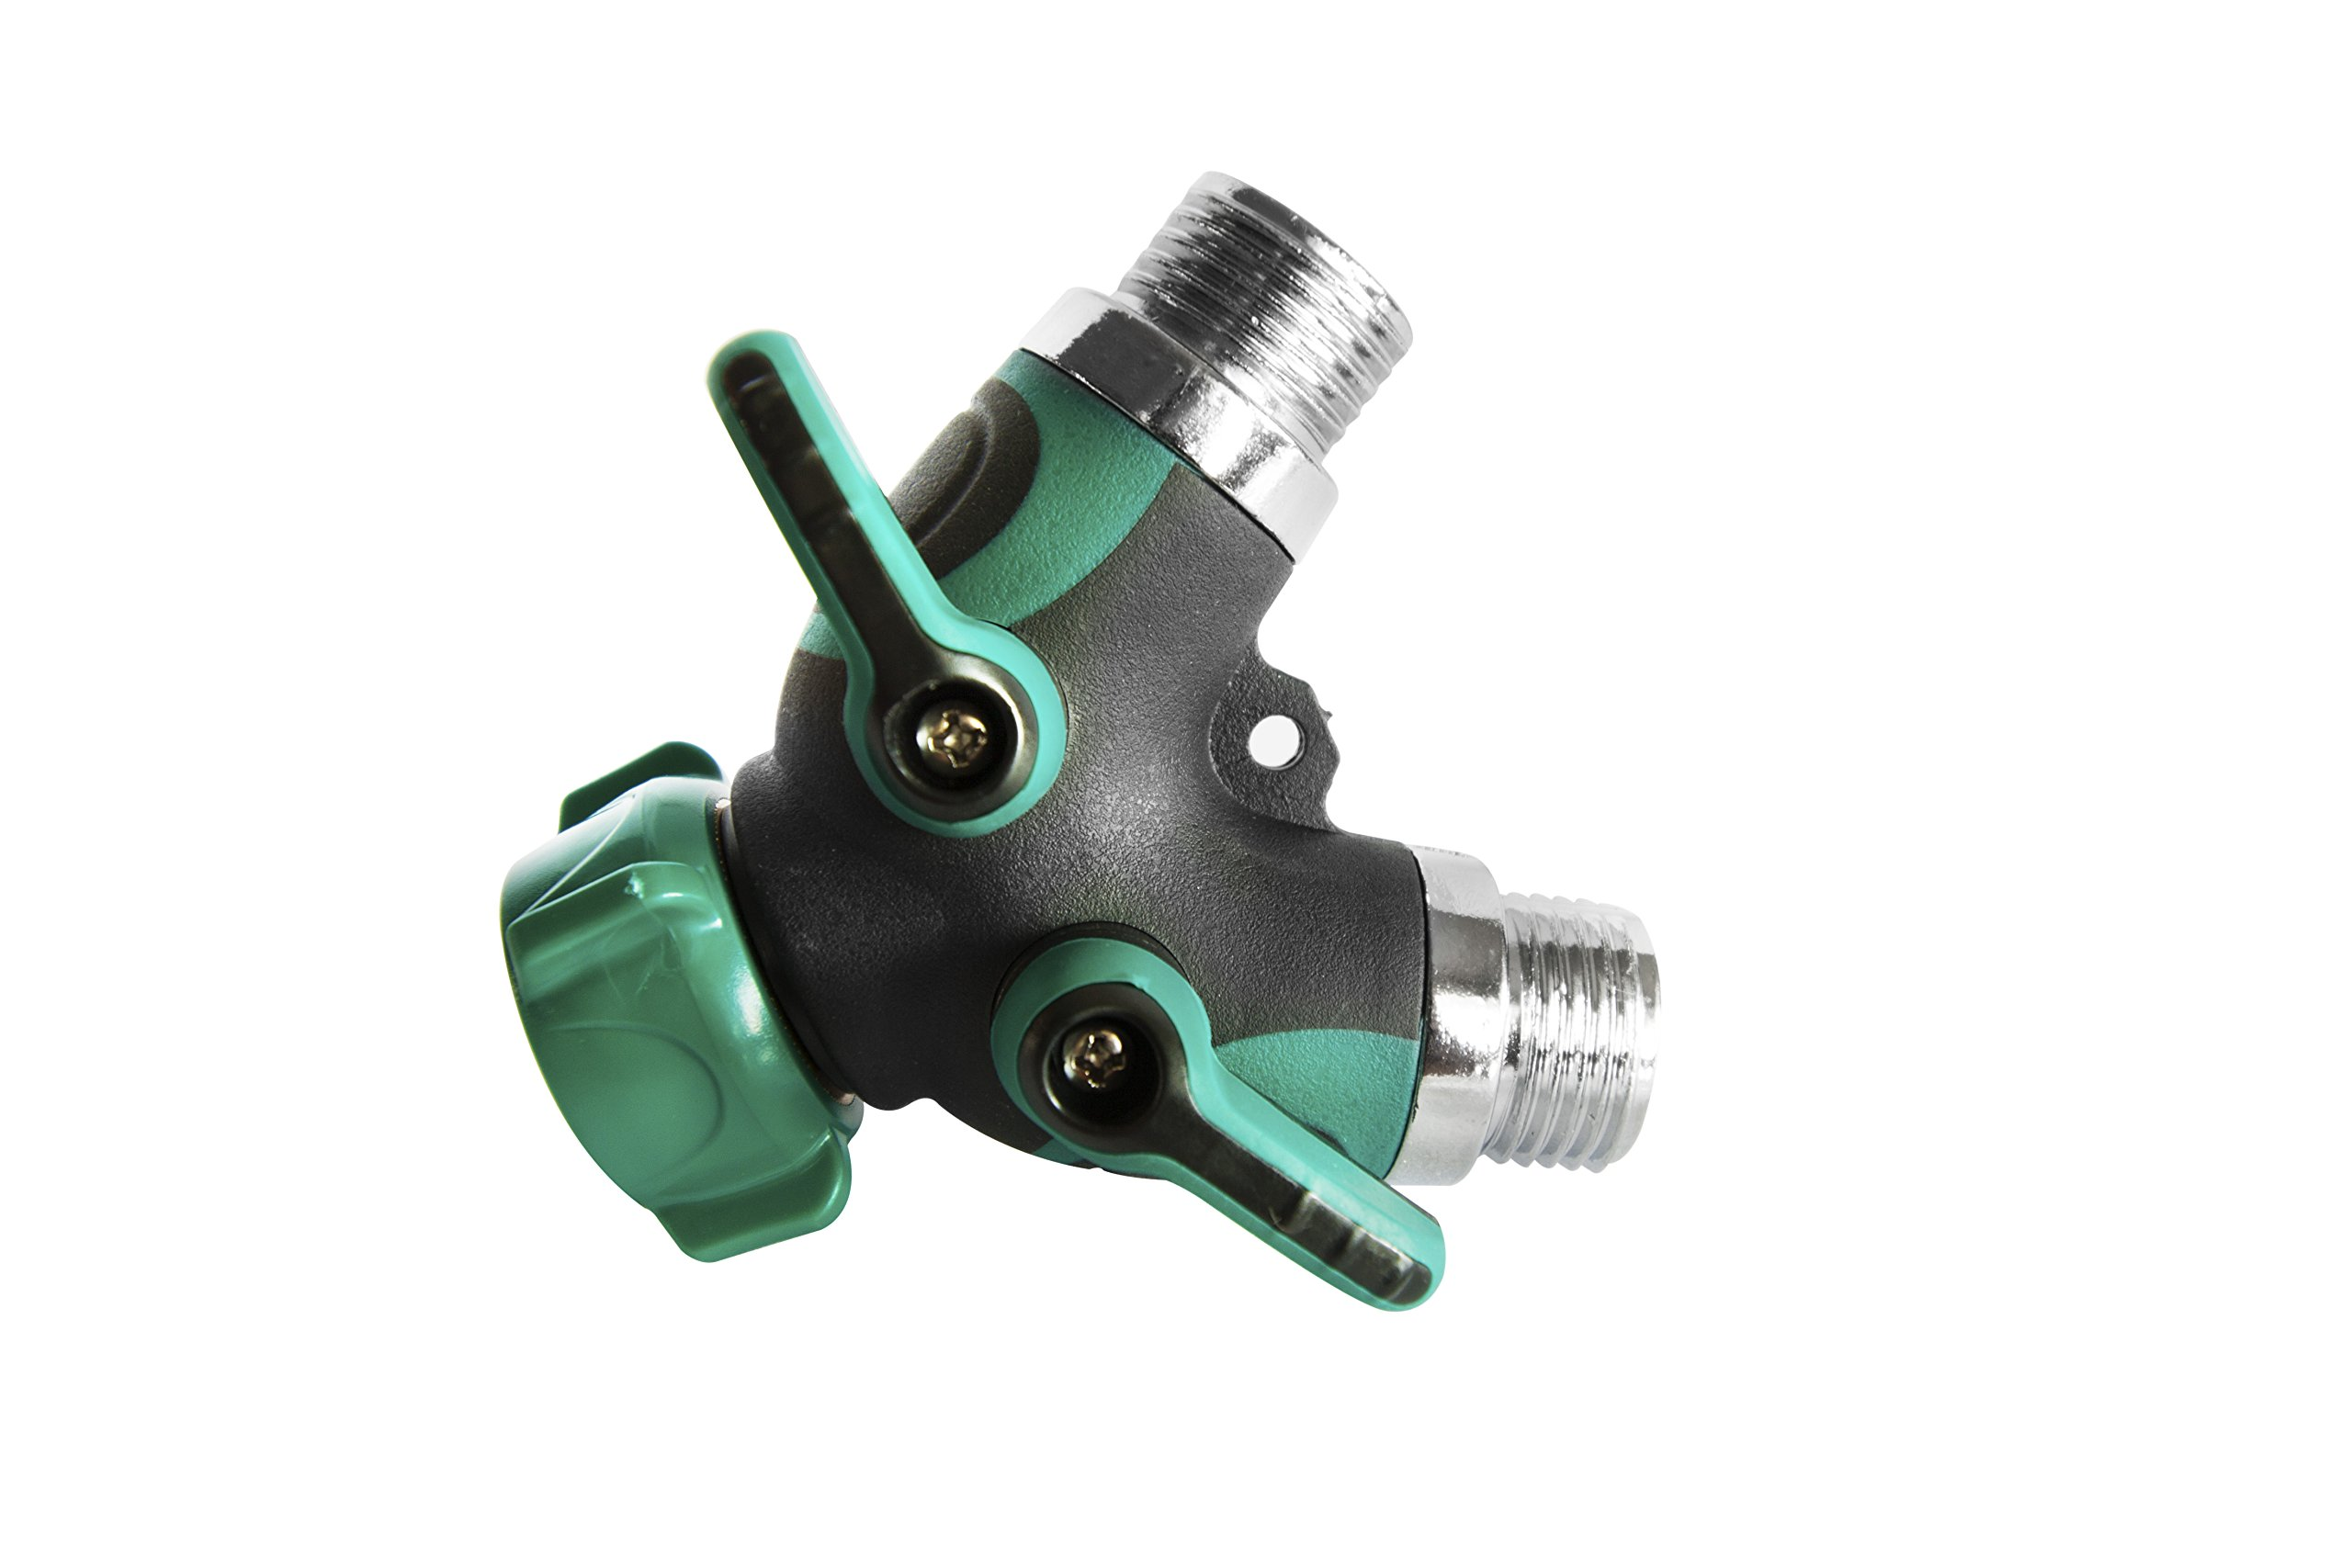 Josy&co. 2 Way, Y Valve Water Hose Splitter - Solid Construction With Comfortable Rubberized Grip.